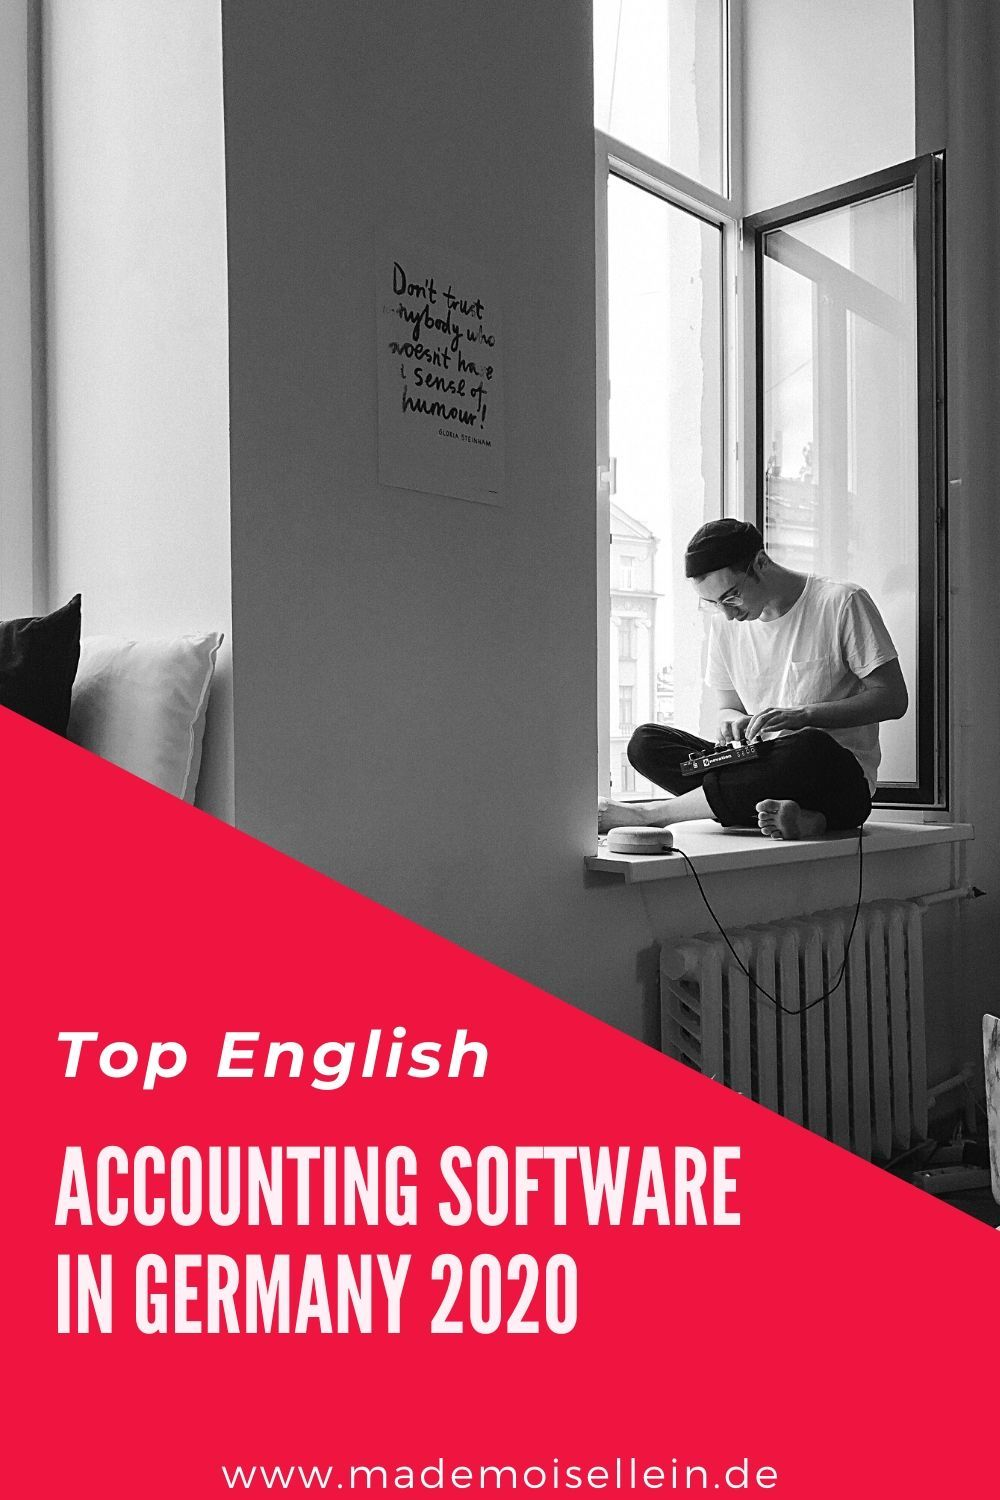 Top 6 Invoicing Tools for Small Businesses in Germany